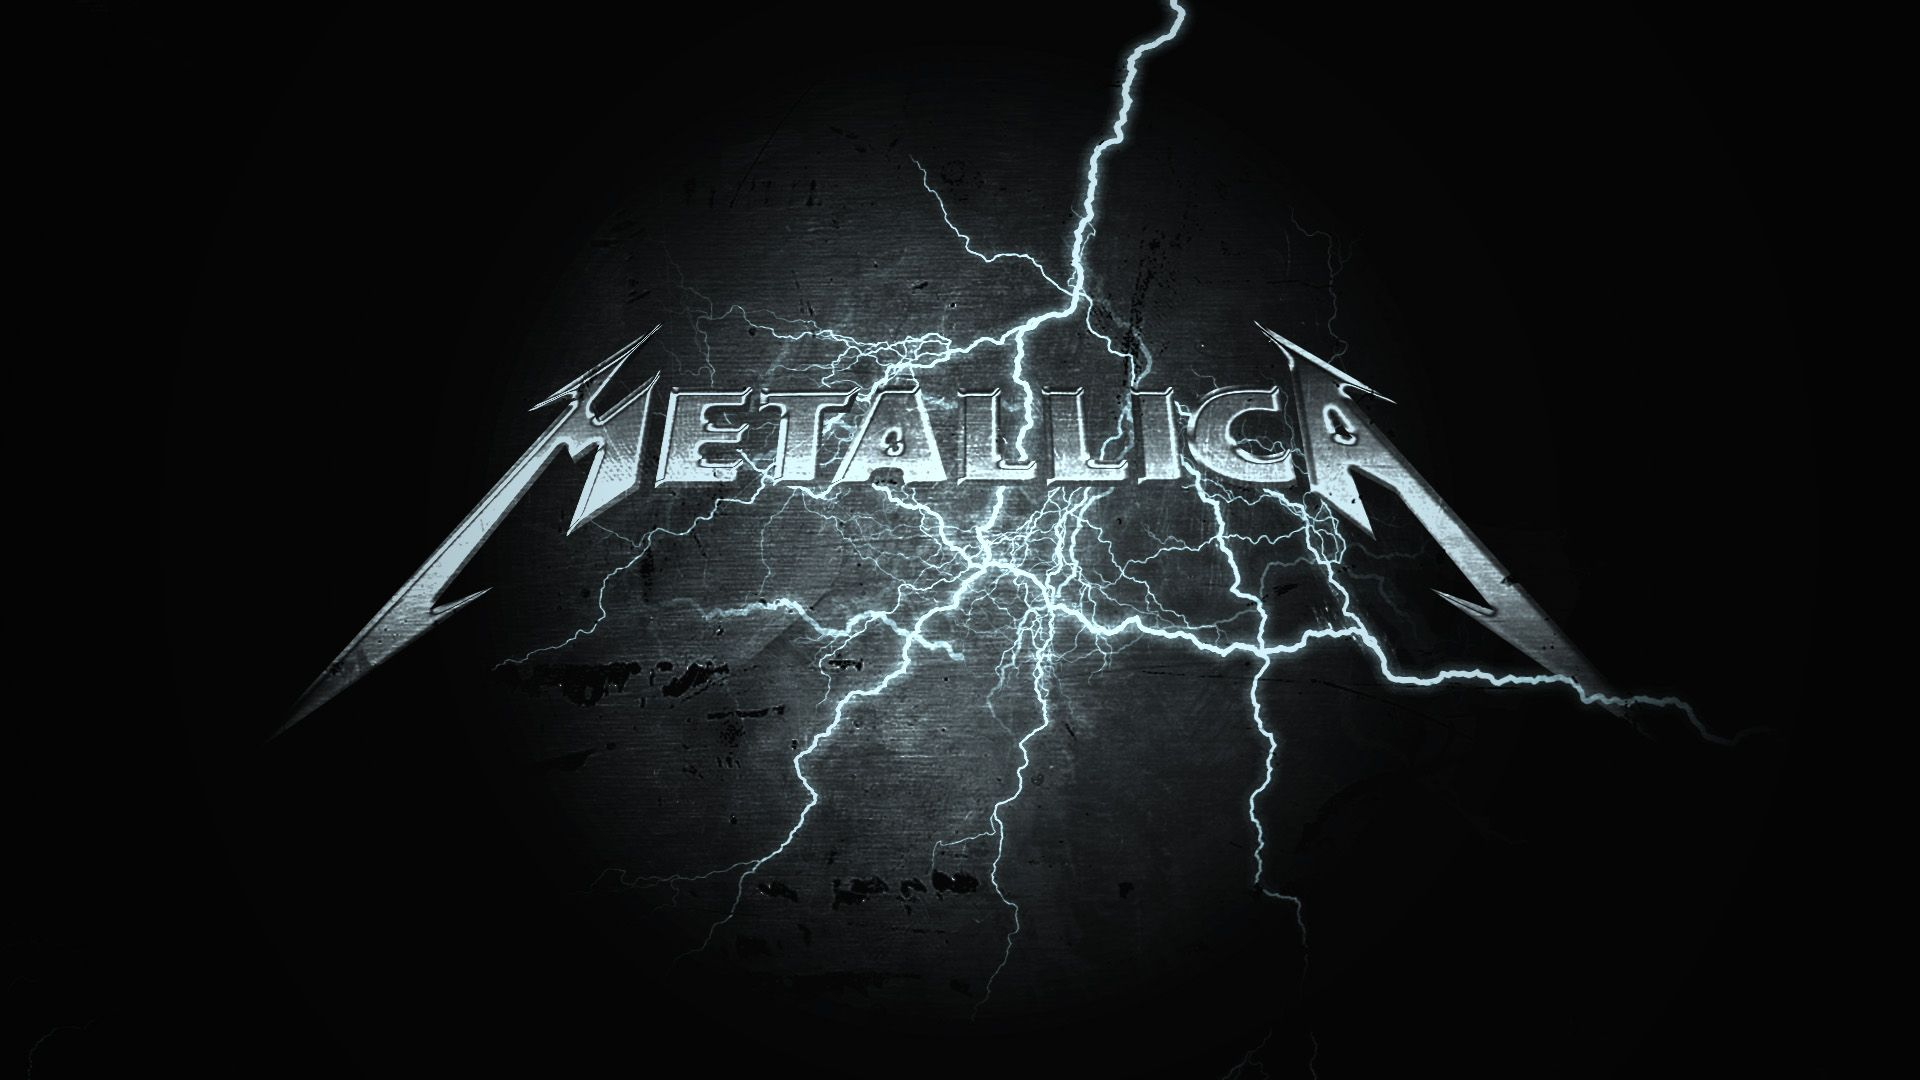 Metallica wallpaper Metallica, Metallica art, Rock band